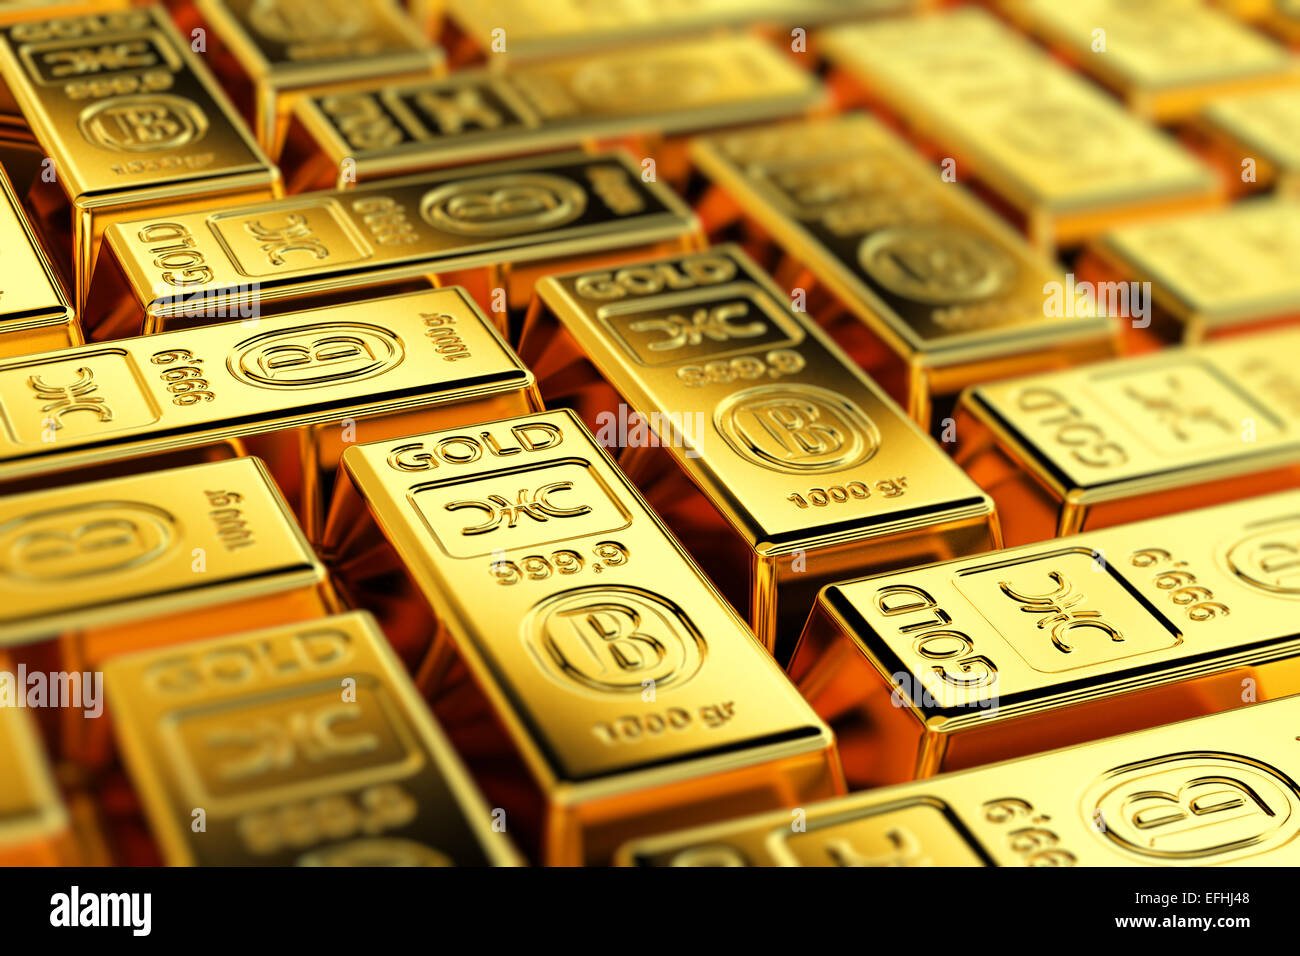 Gold bars - Stock Image